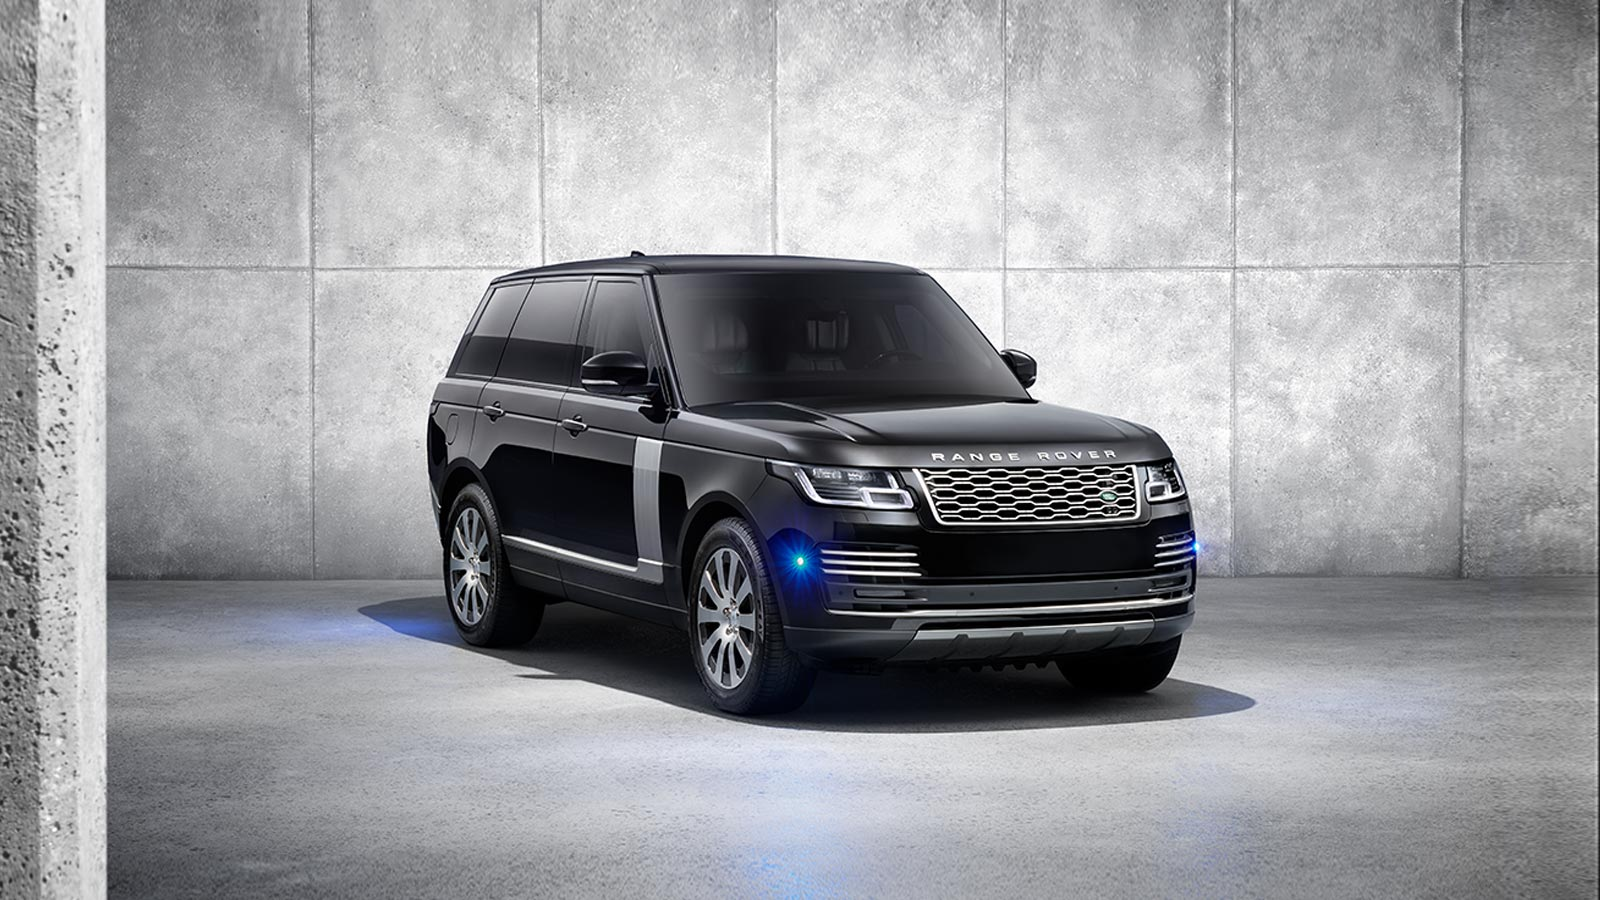 Luxury meets security in the Range Rover Sentinel